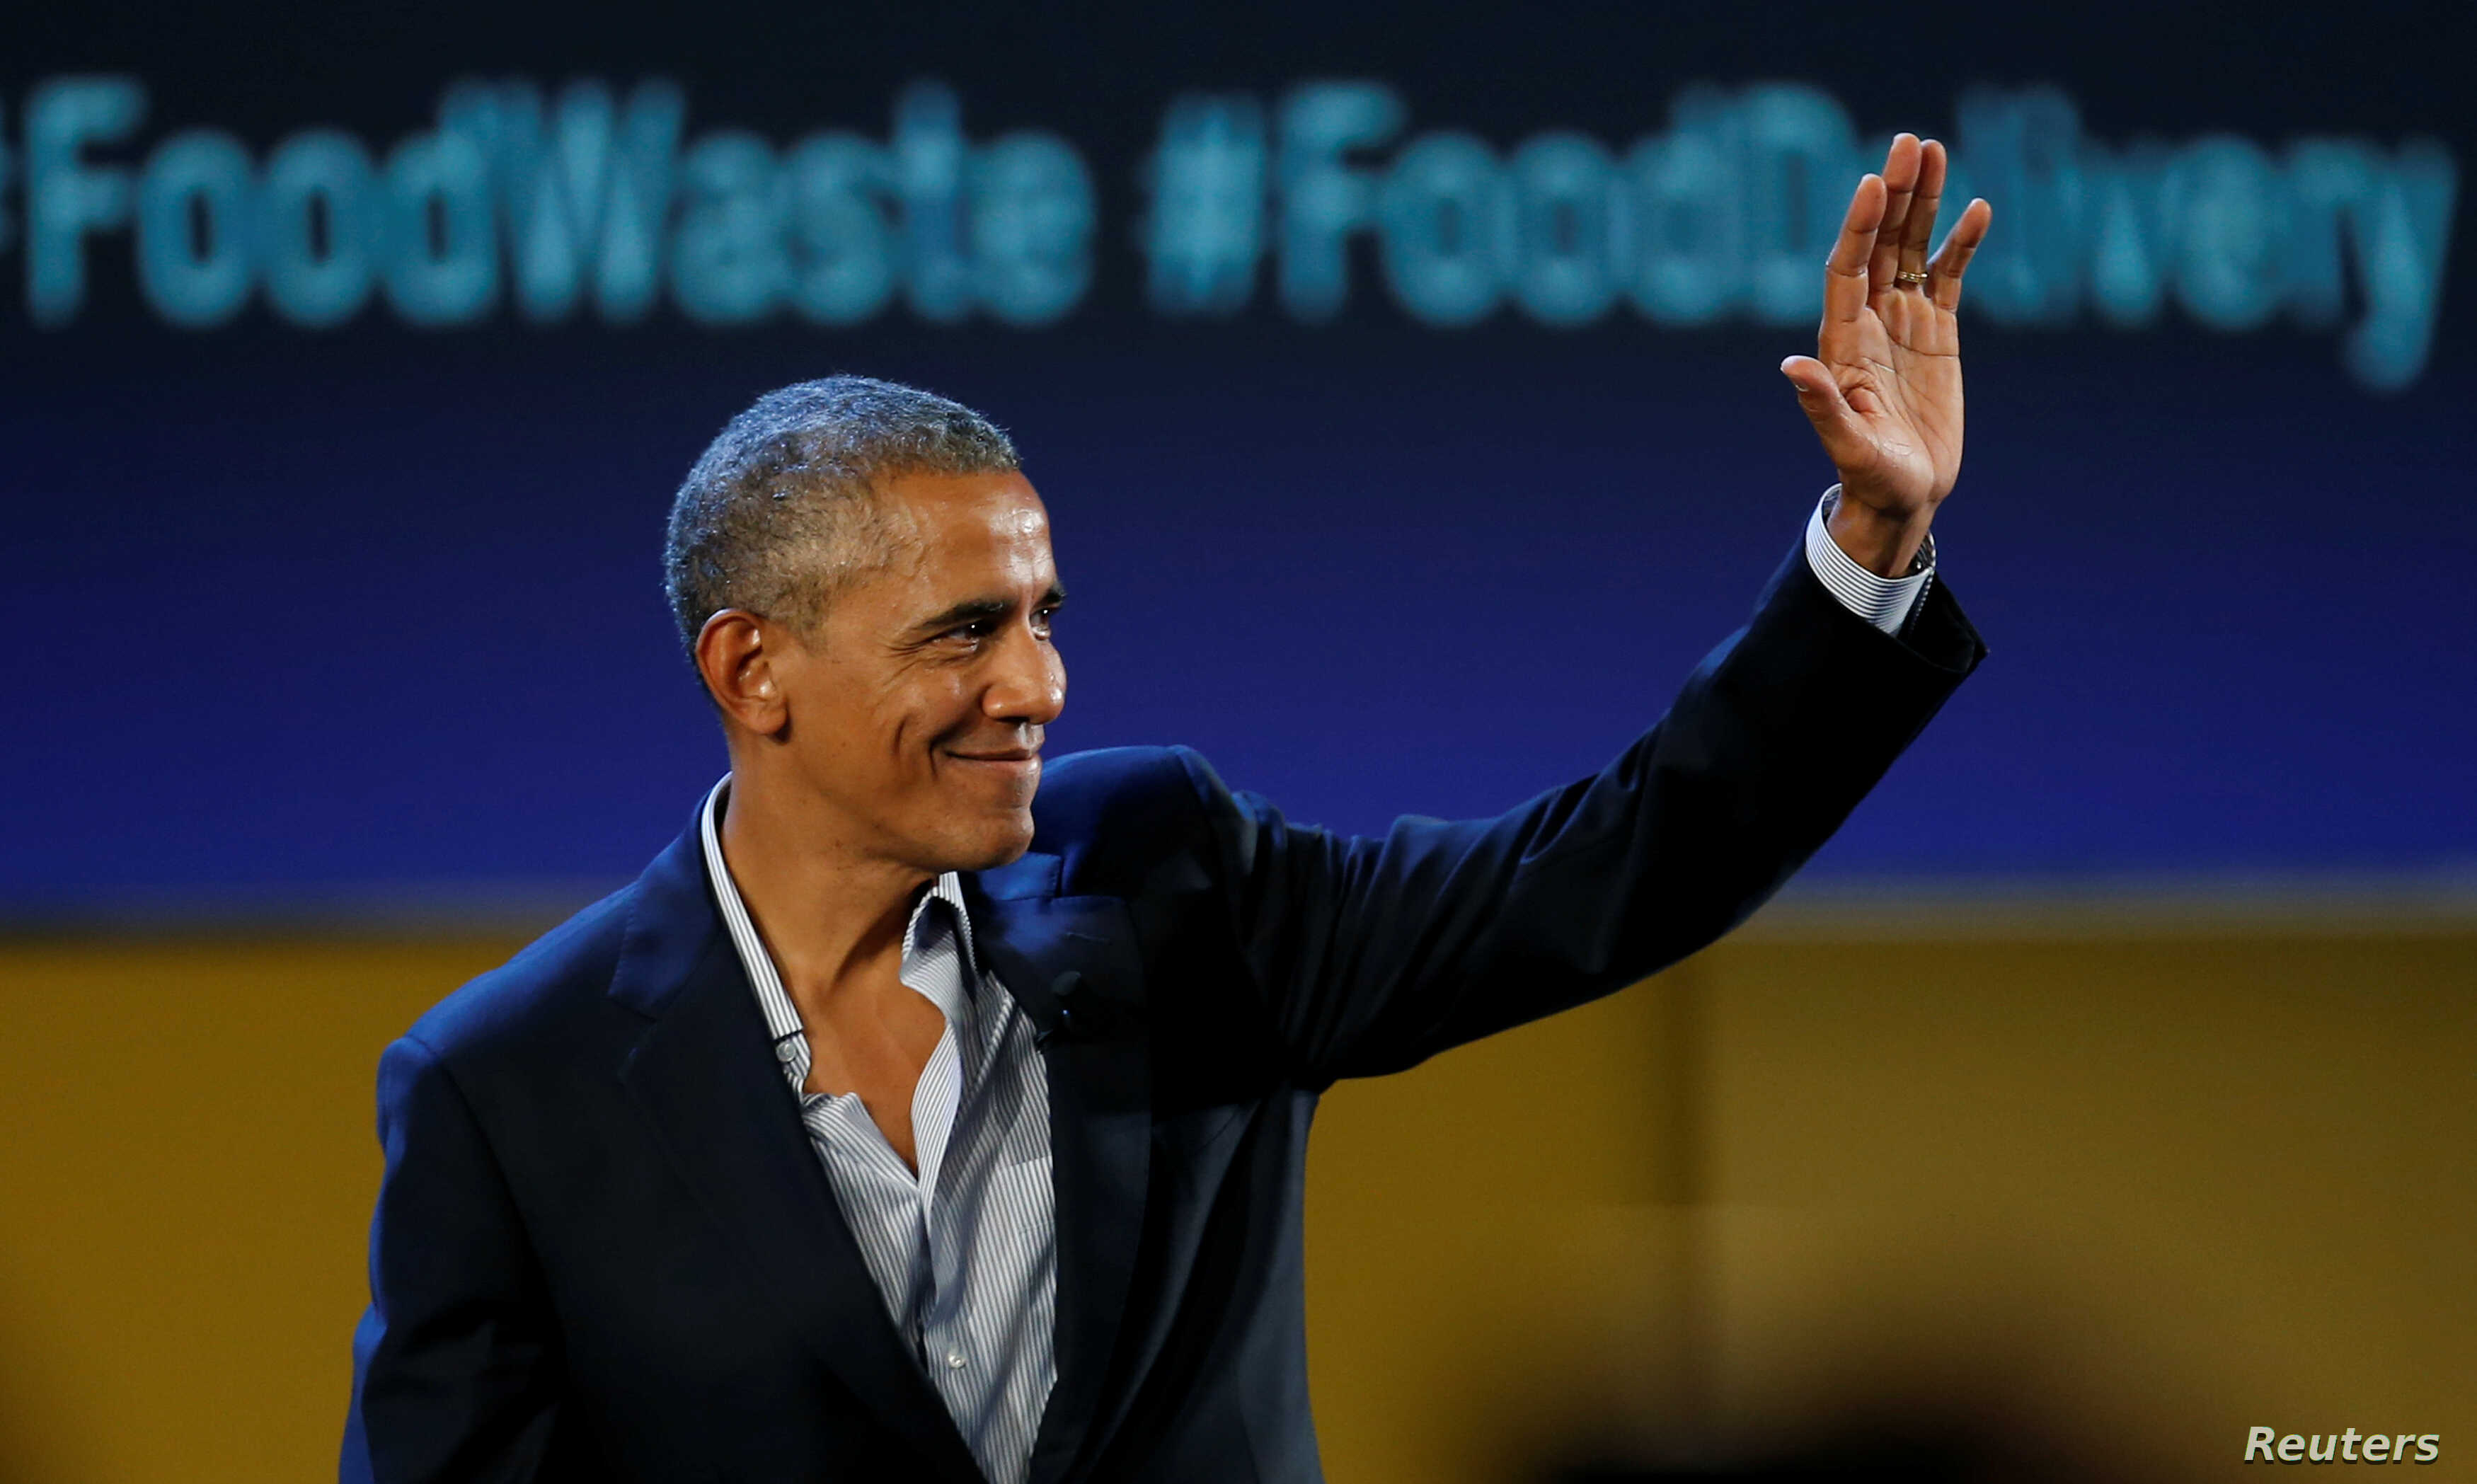 Former U.S. President Barack Obama waves after speaking at the Global Food Innovation Summit in Milan, Italy, May 9, 2017.